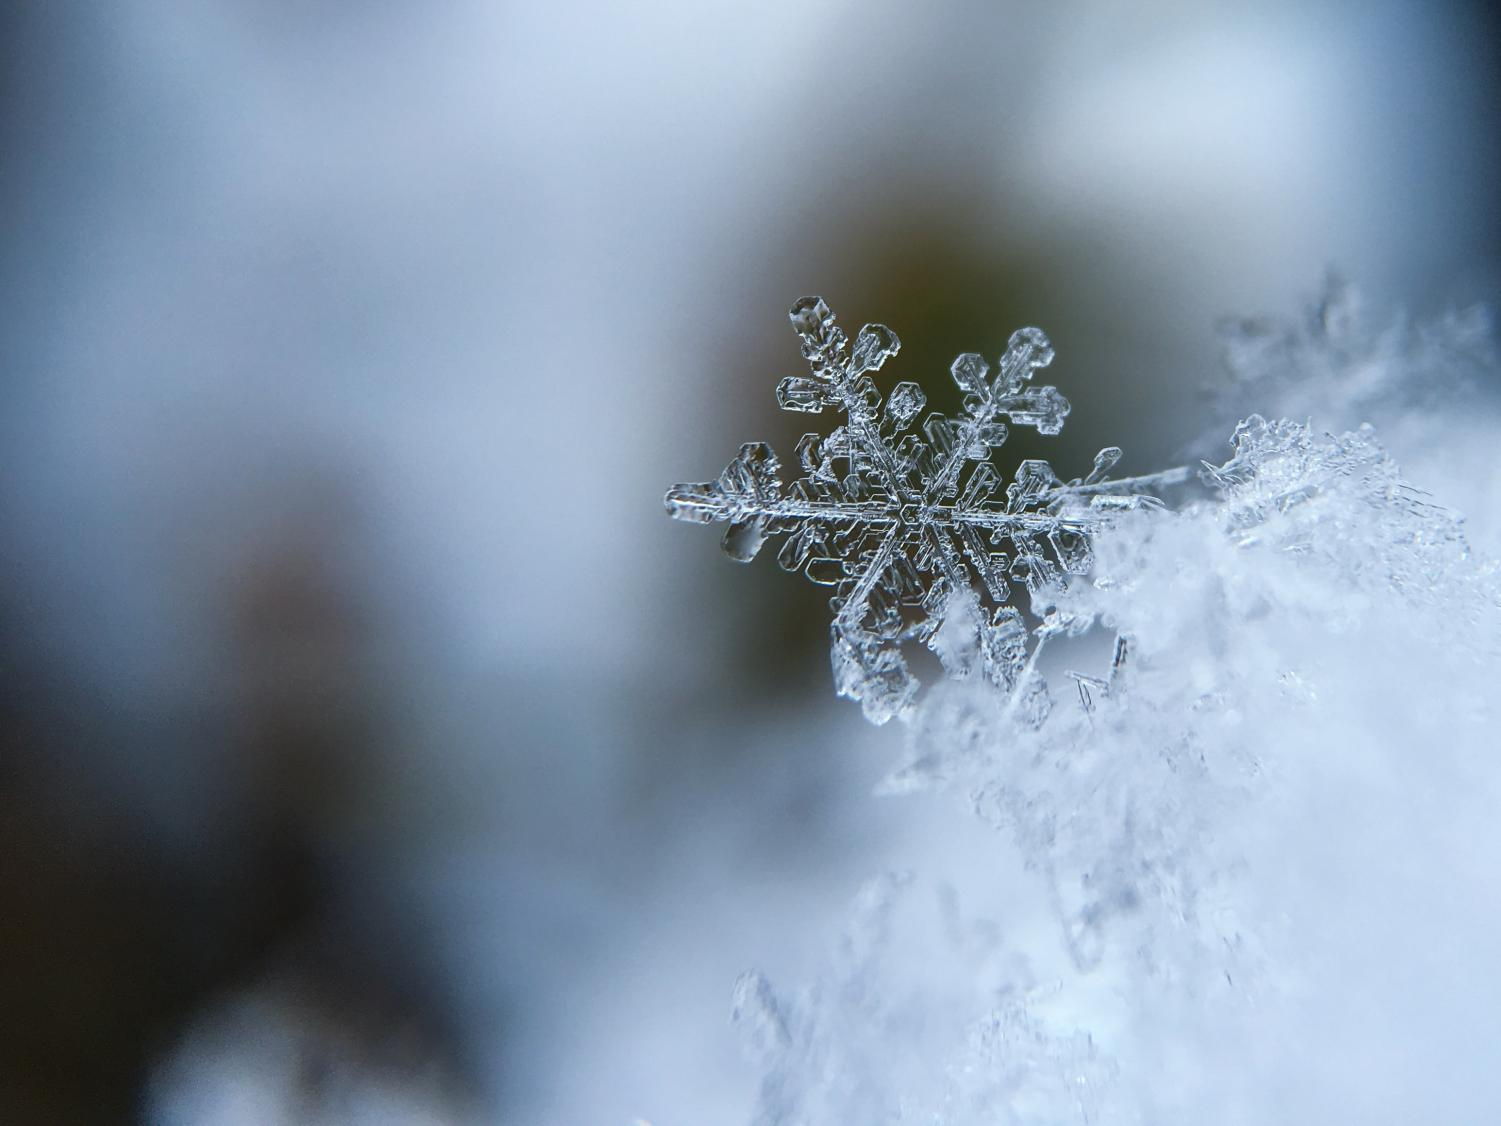 Close up photo of a snowflake by Aaron Burden